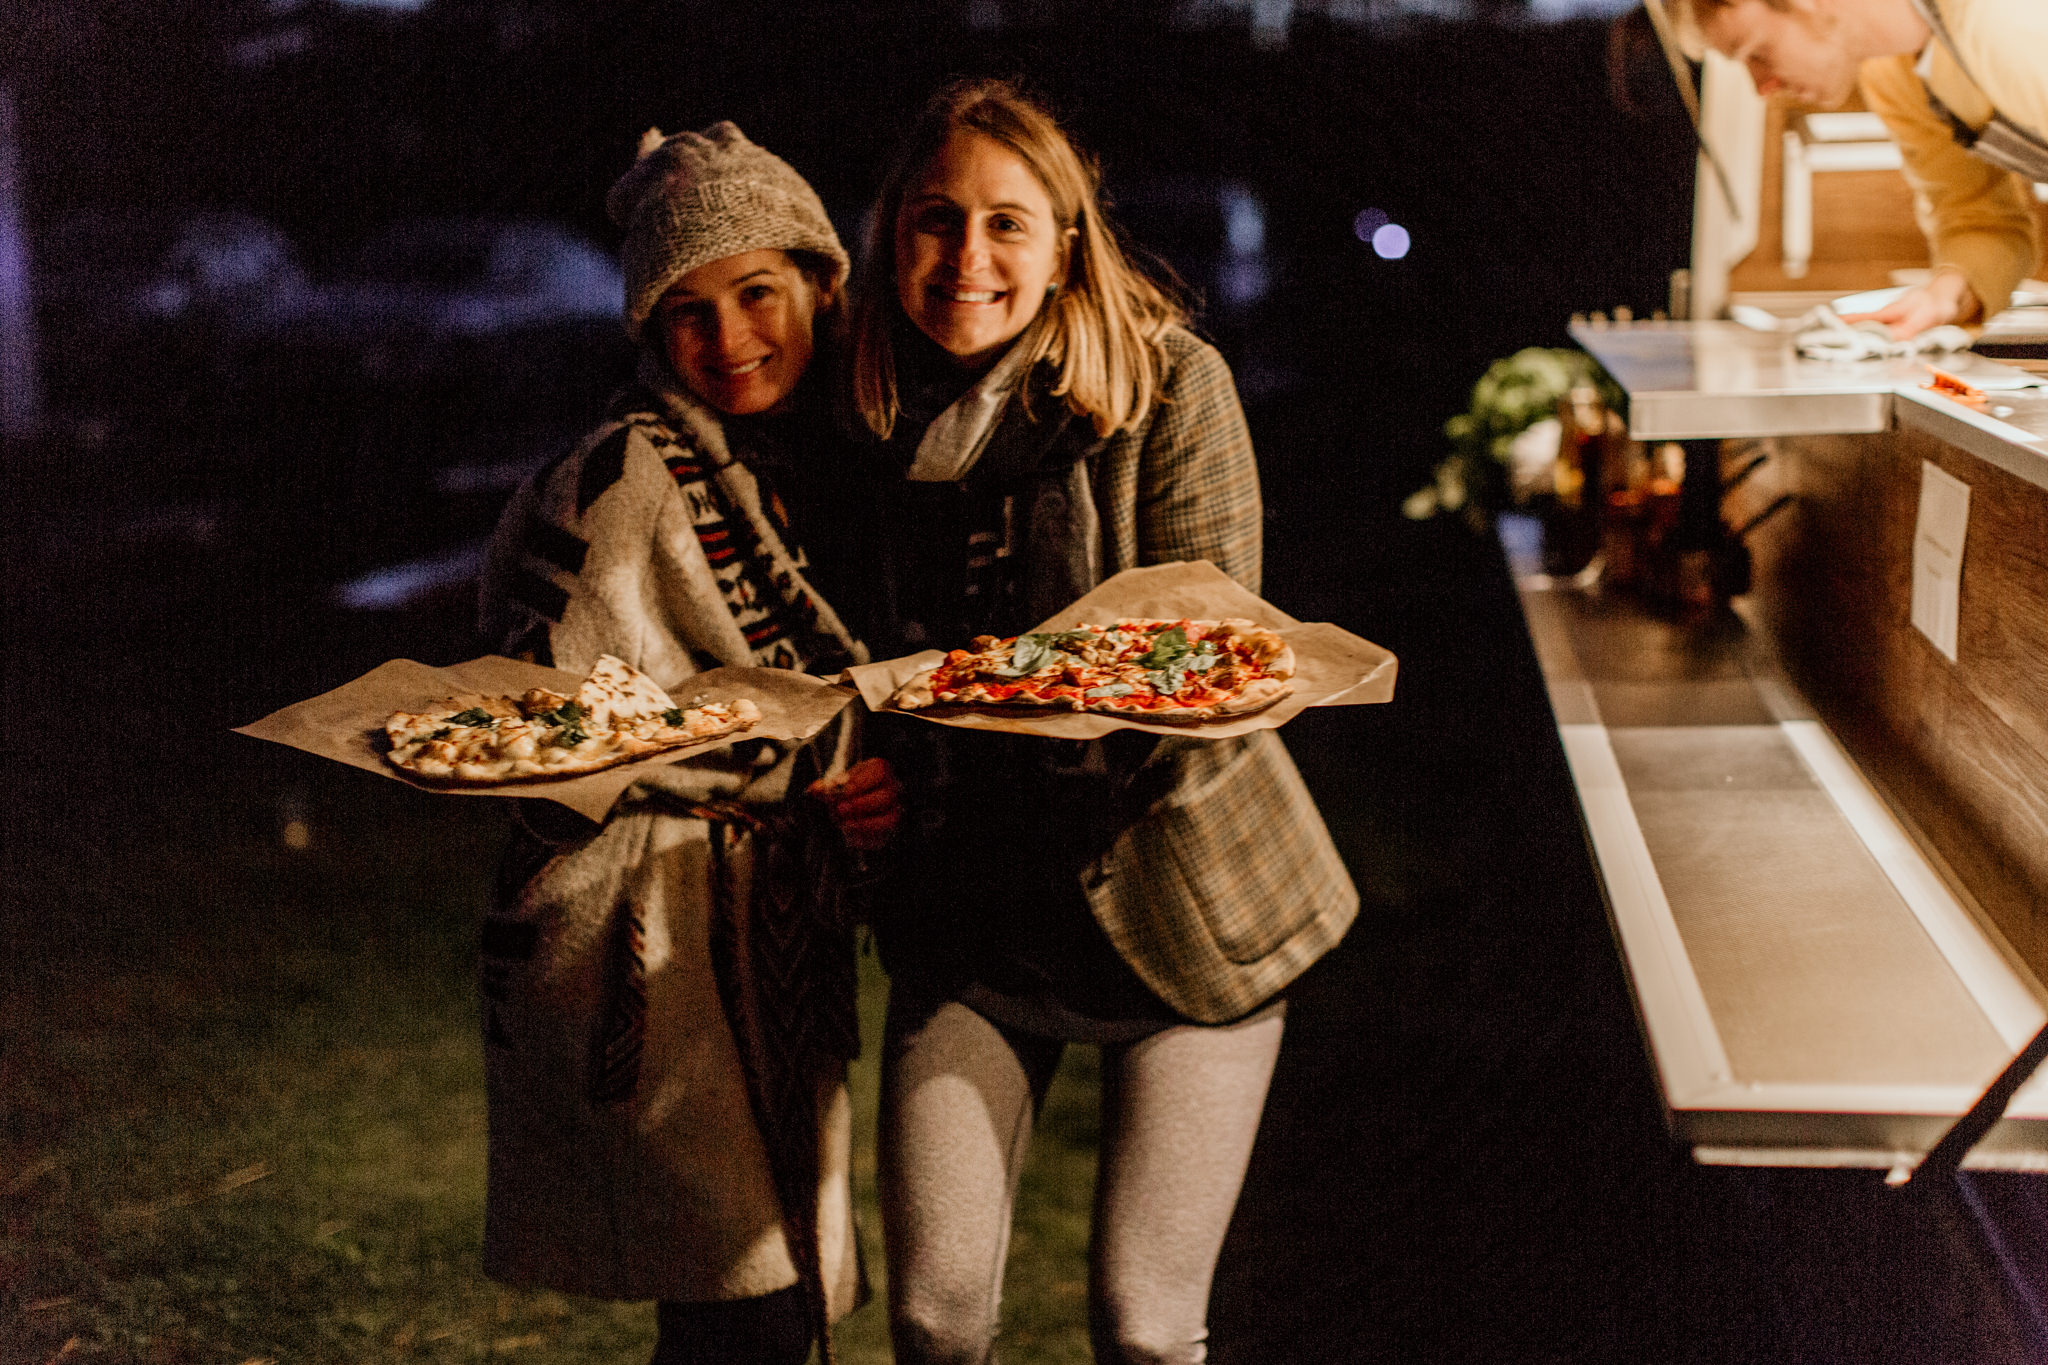 pizza van wedding reception ideas